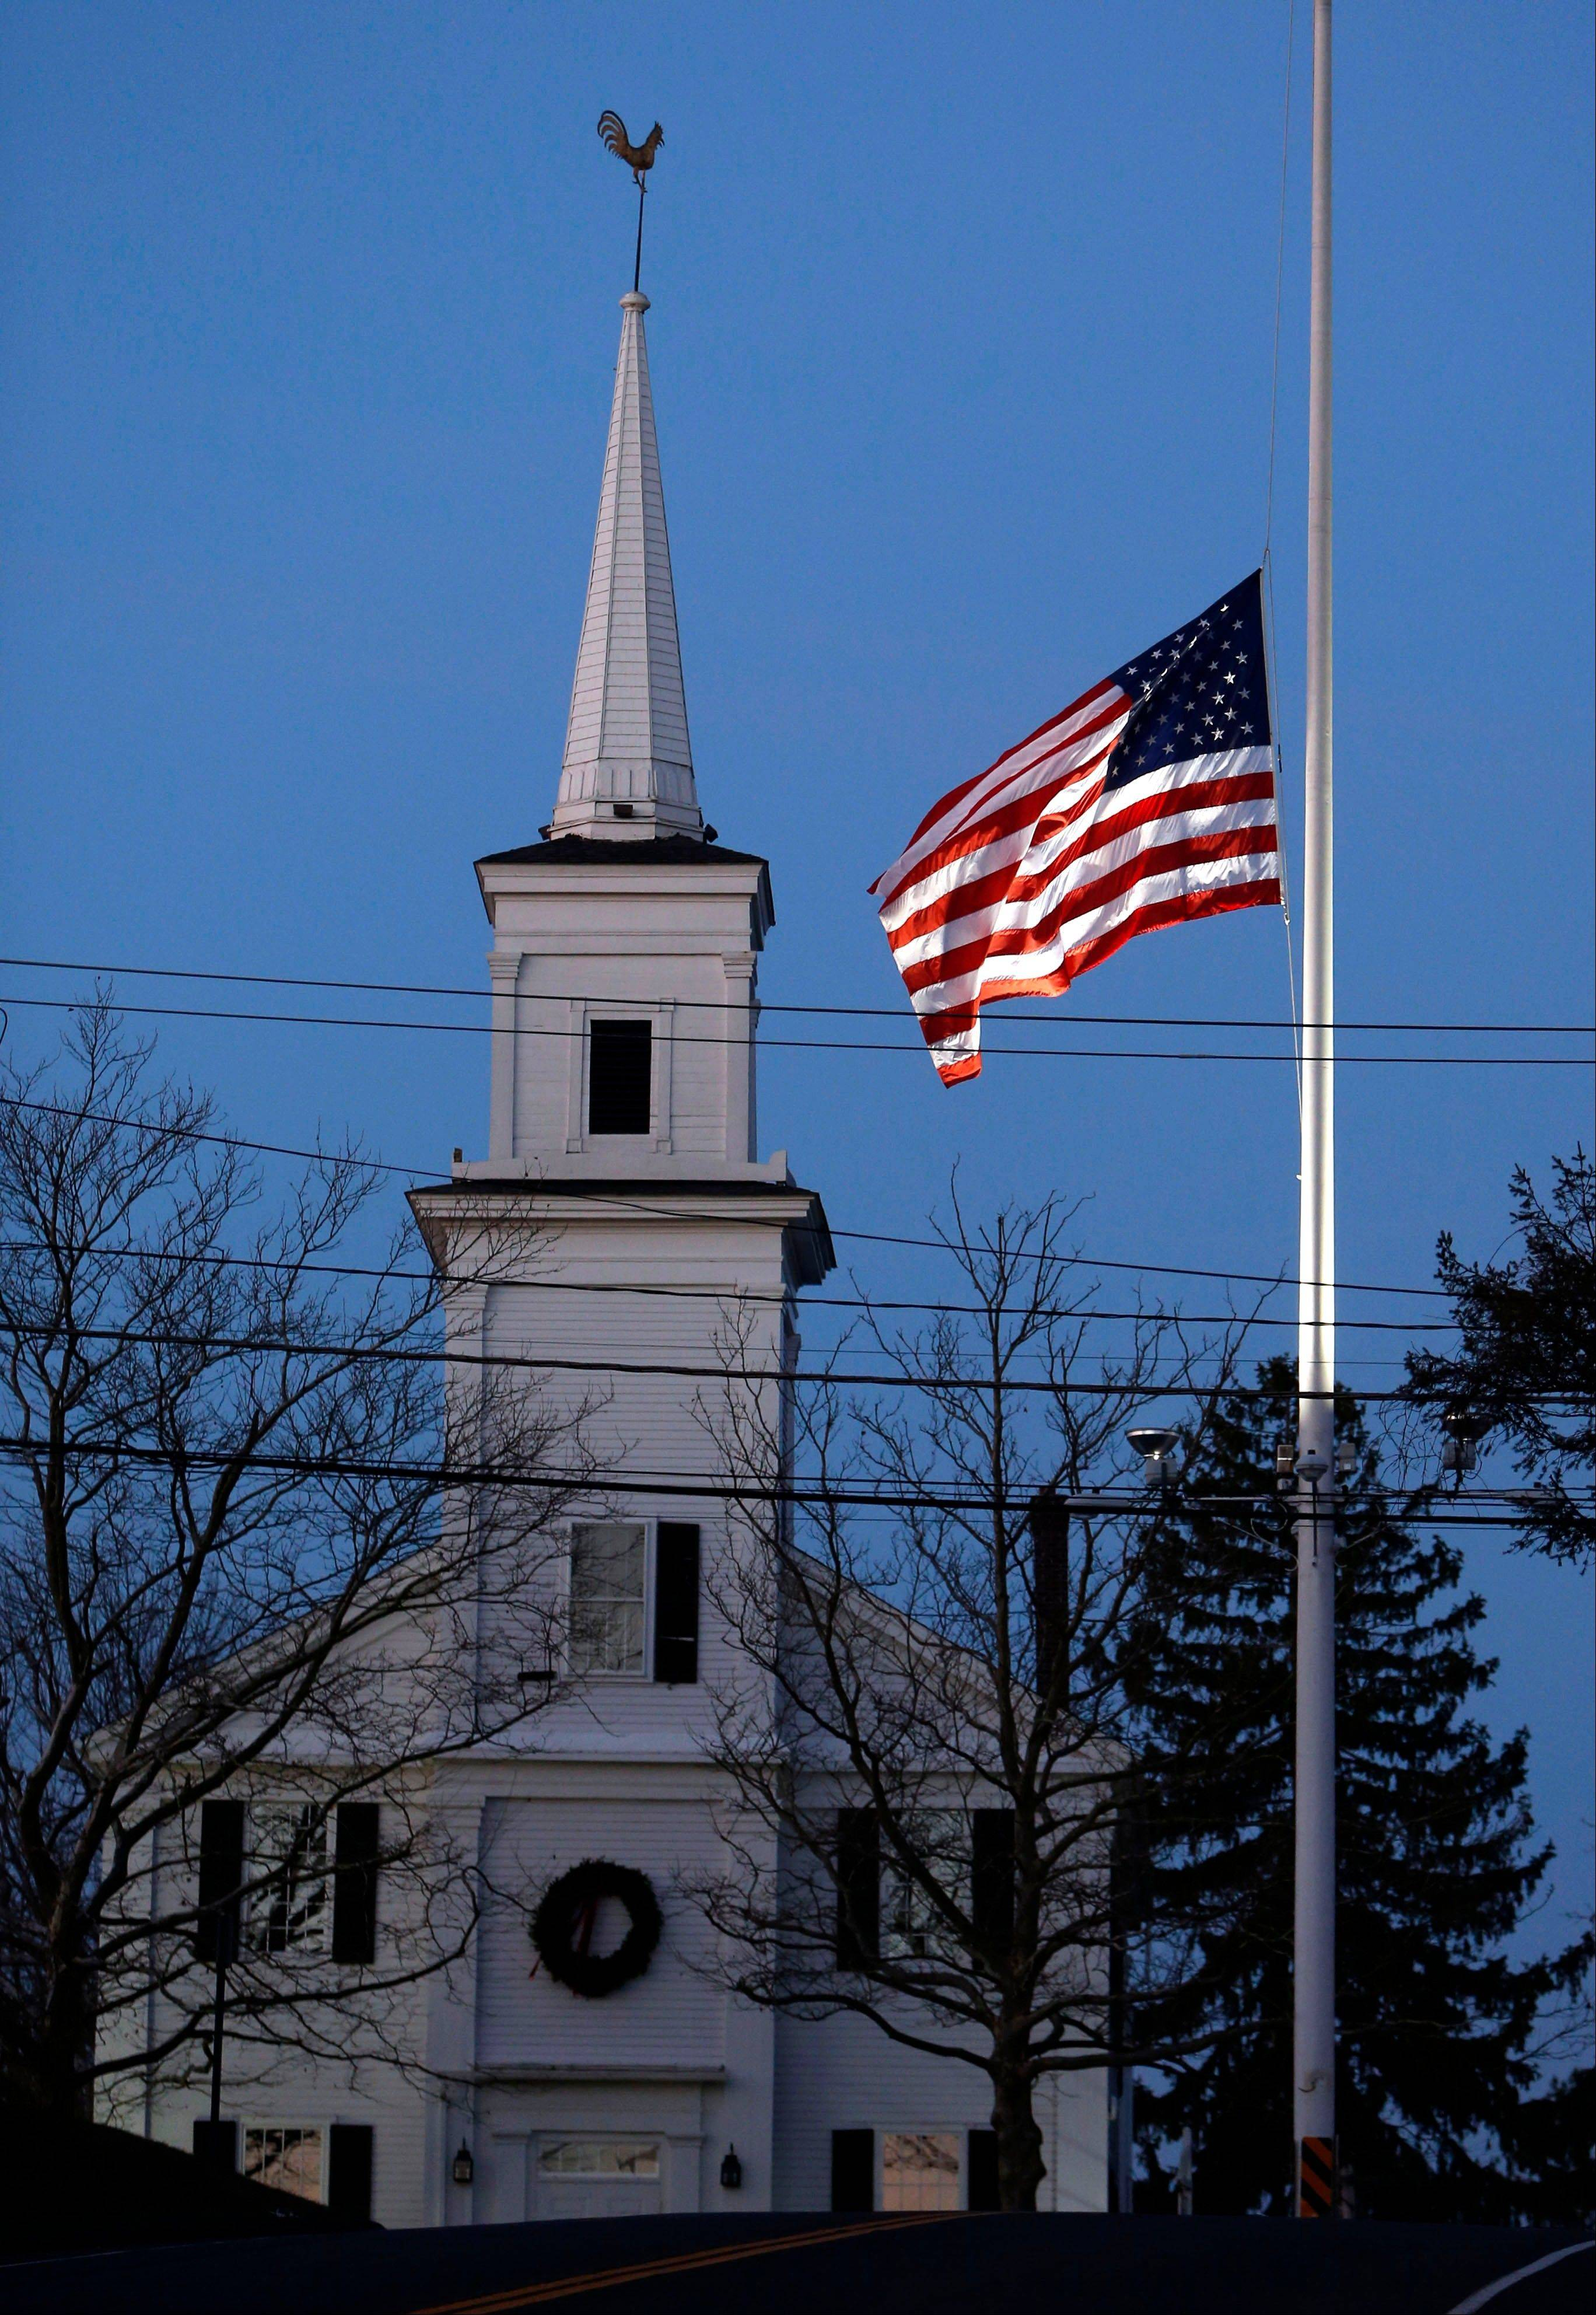 An American flag flies at half-staff as dawn breaks, Saturday, Dec. 15, in Newtown, Conn. A gunman walked into Sandy Hook Elementary School in Newtown Friday and opened fire, killing 26 people, including 20 children.